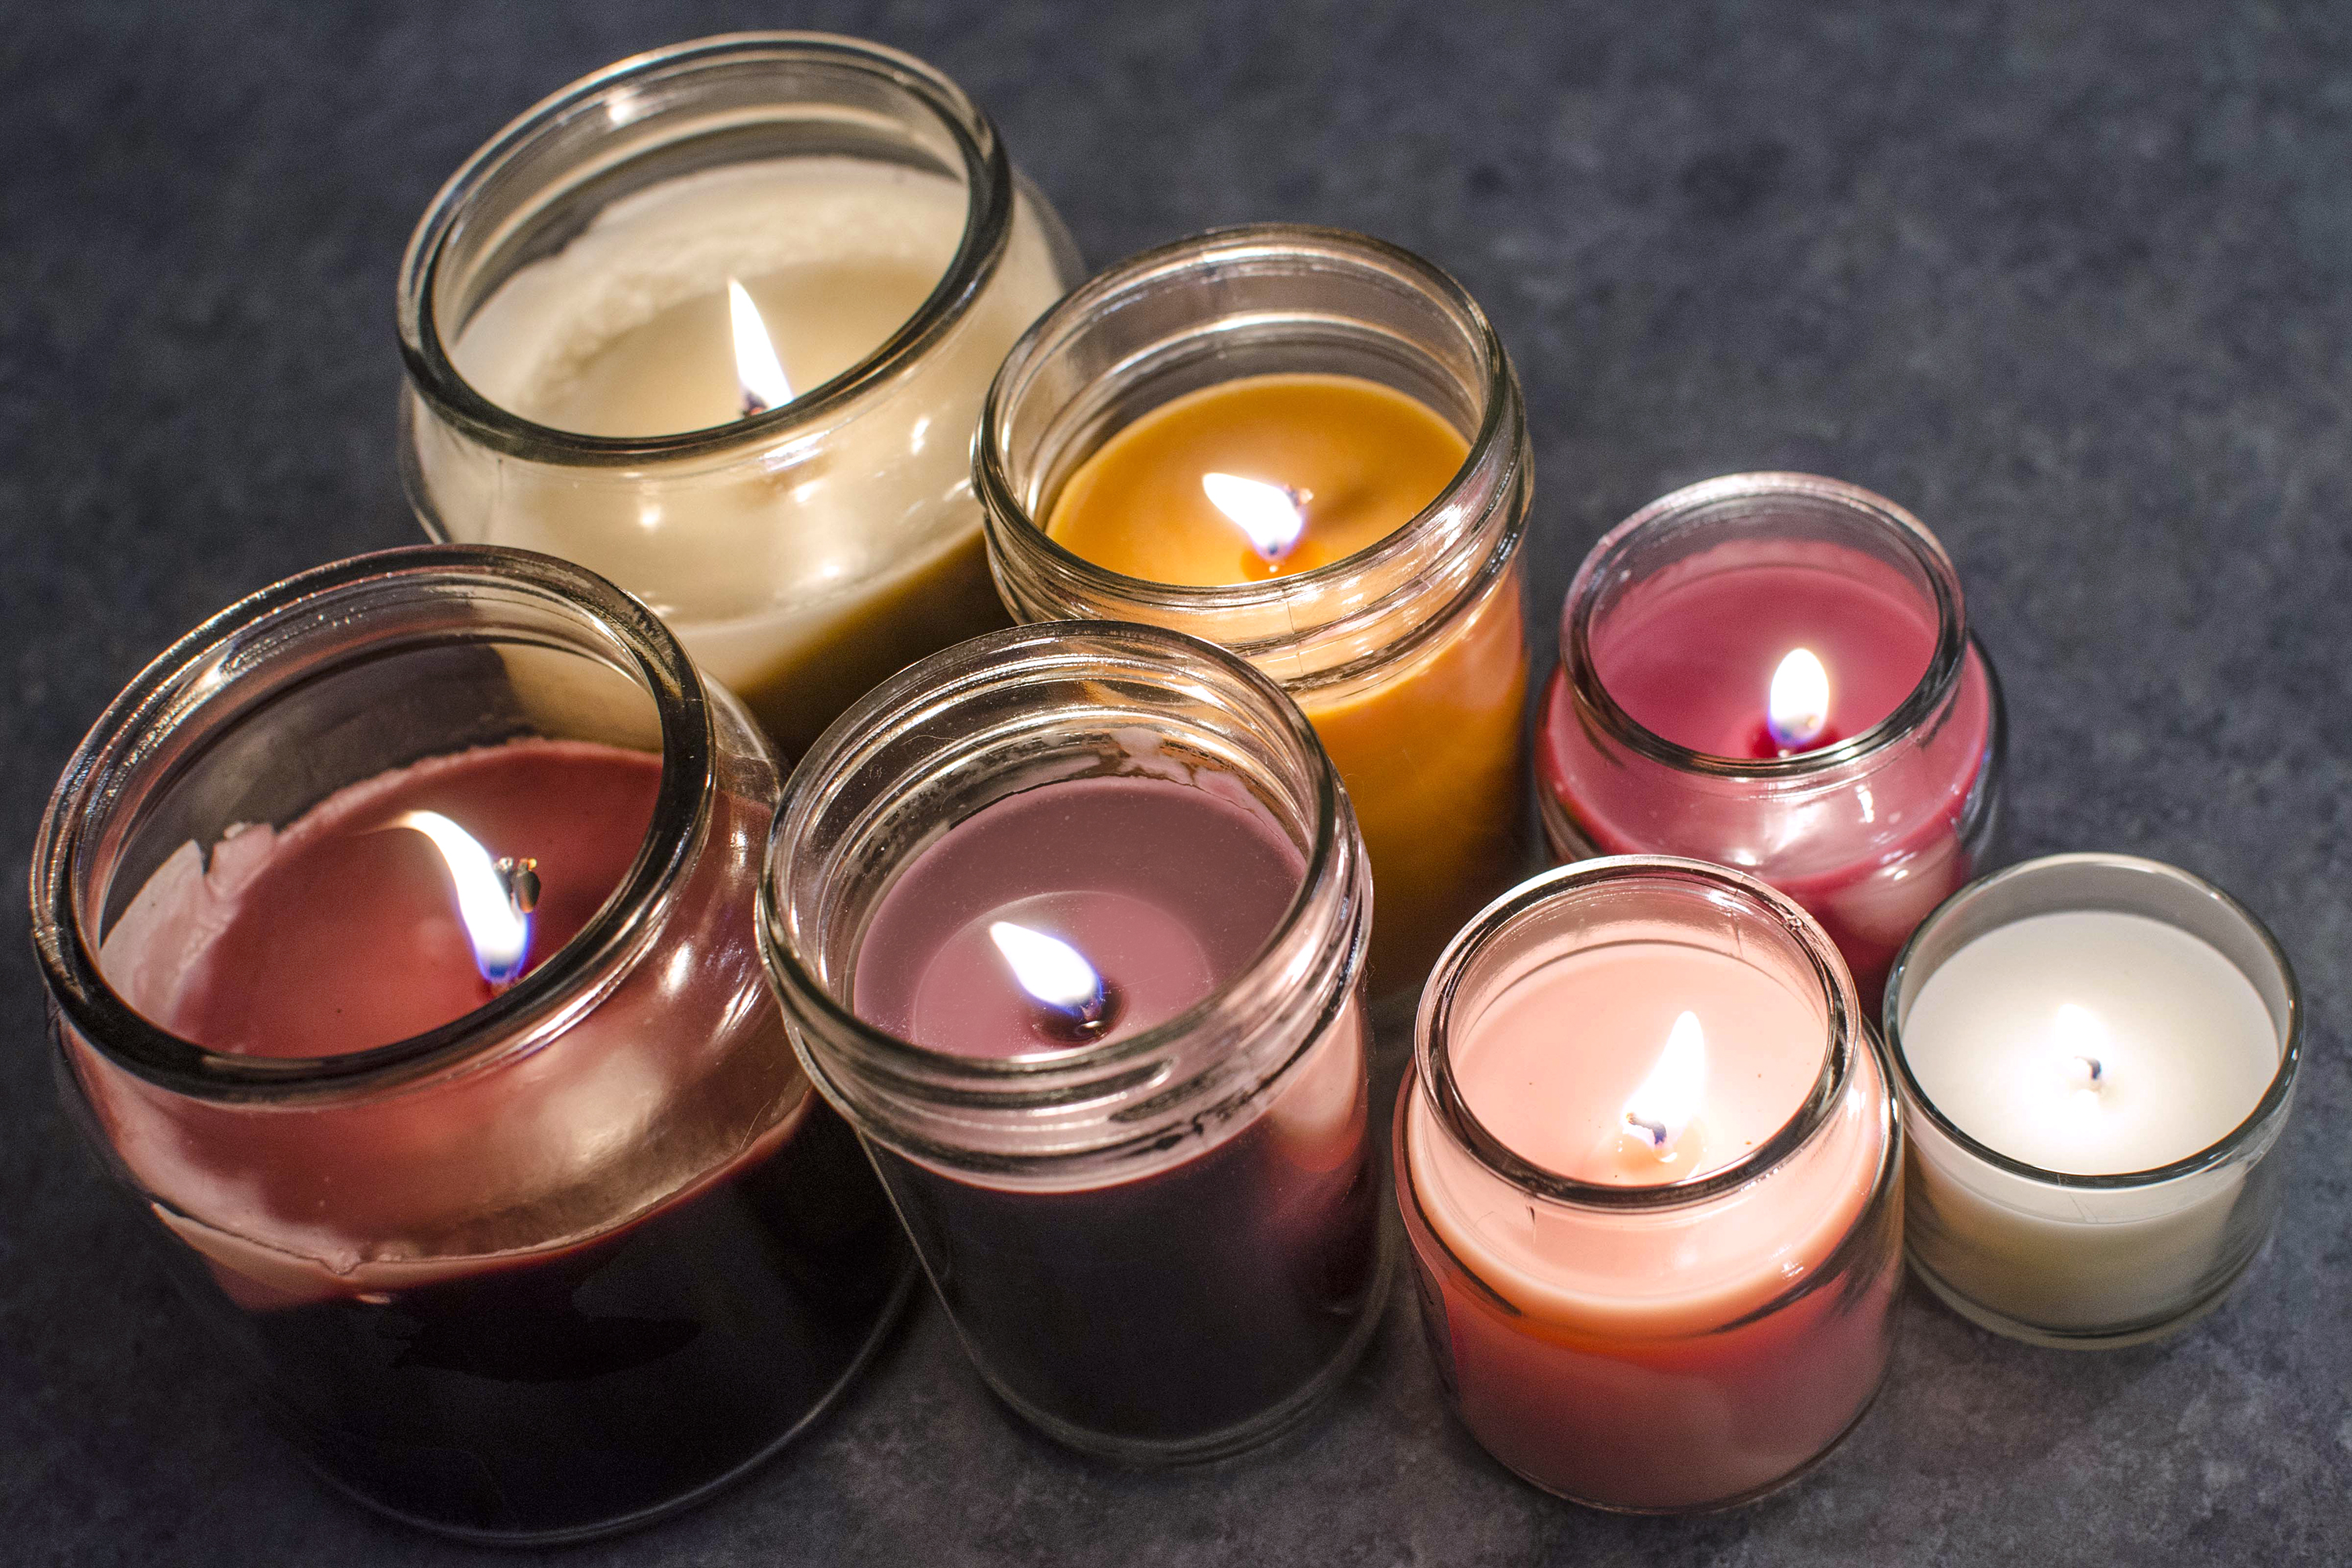 Science Fair Projects on Which Candle Will Burn Faster | Sciencing